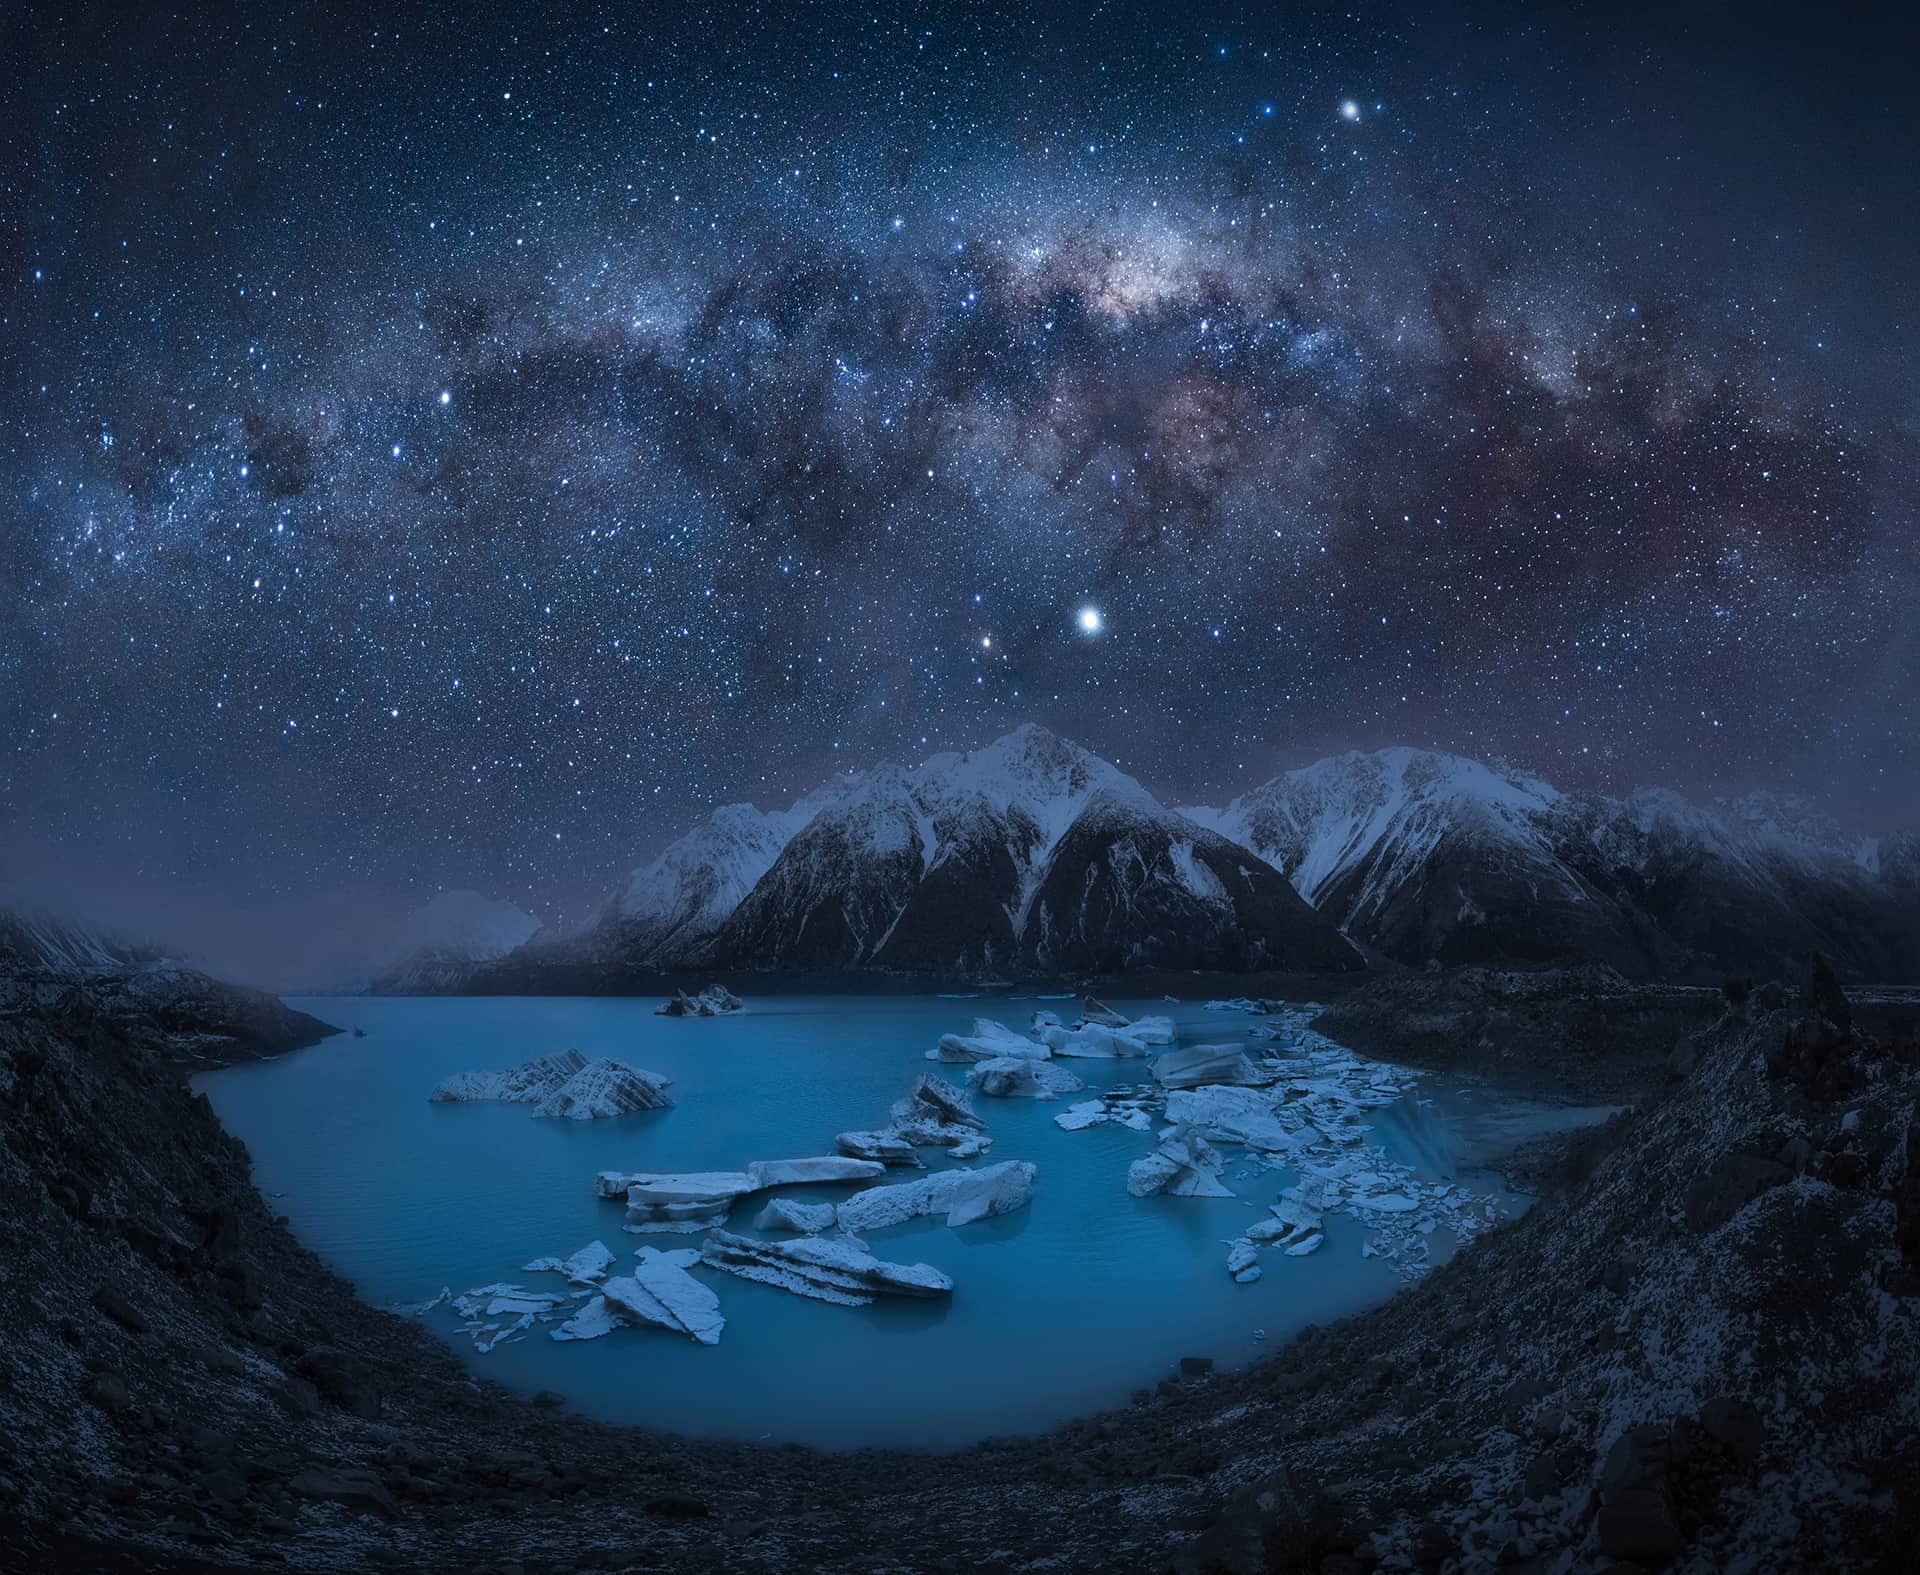 Best places to see the Milky Way Southern Hemisphere